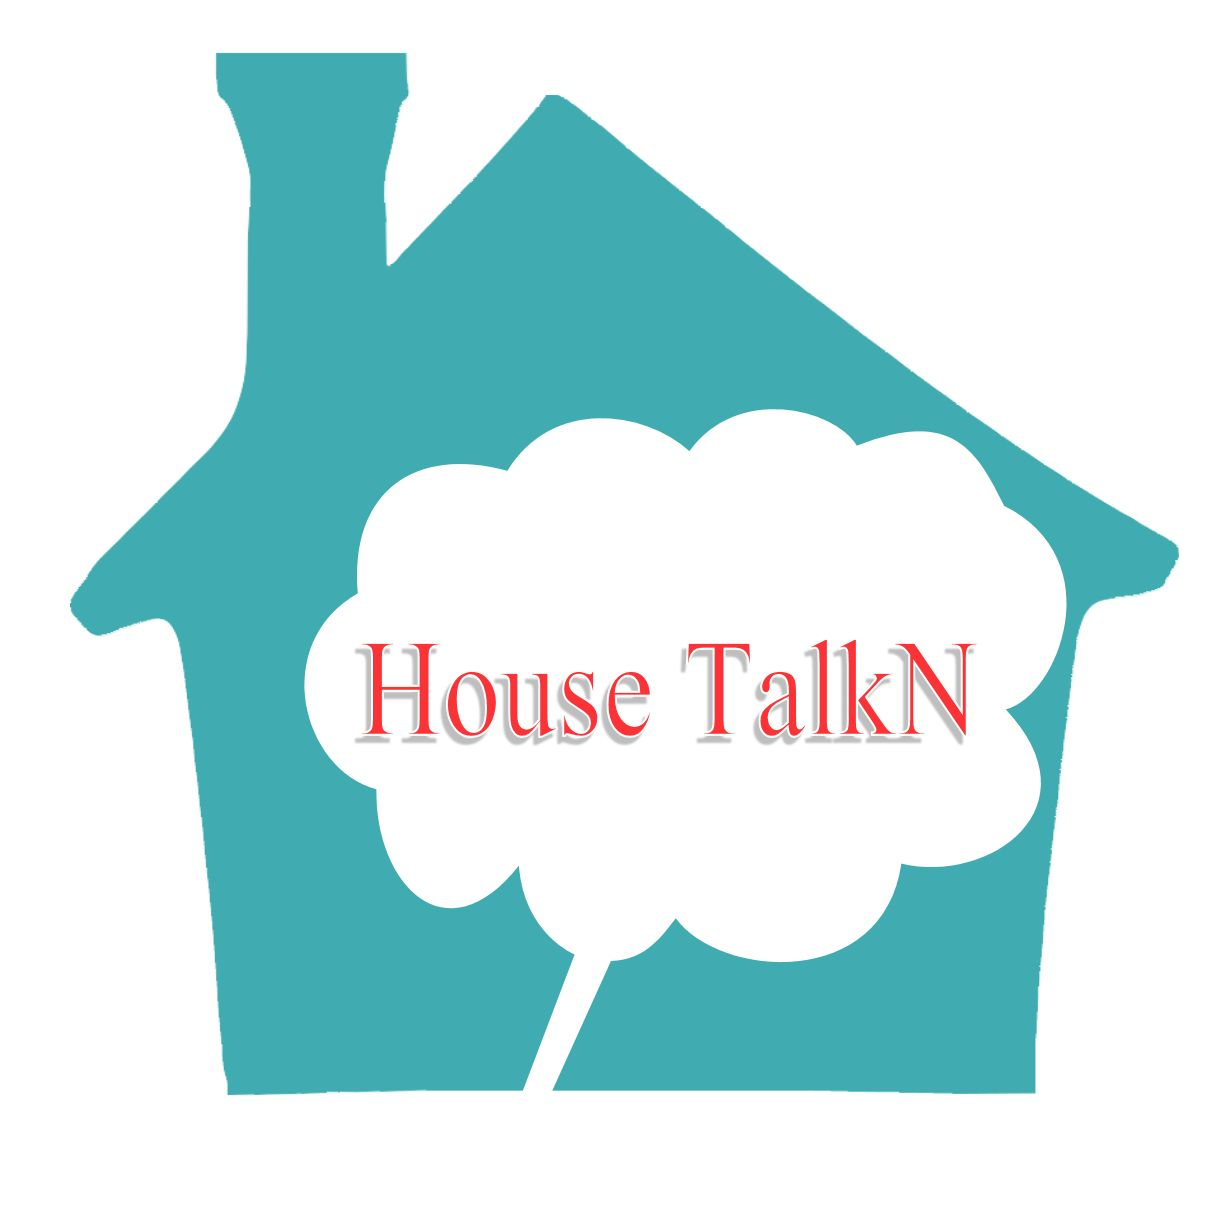 House Talkn